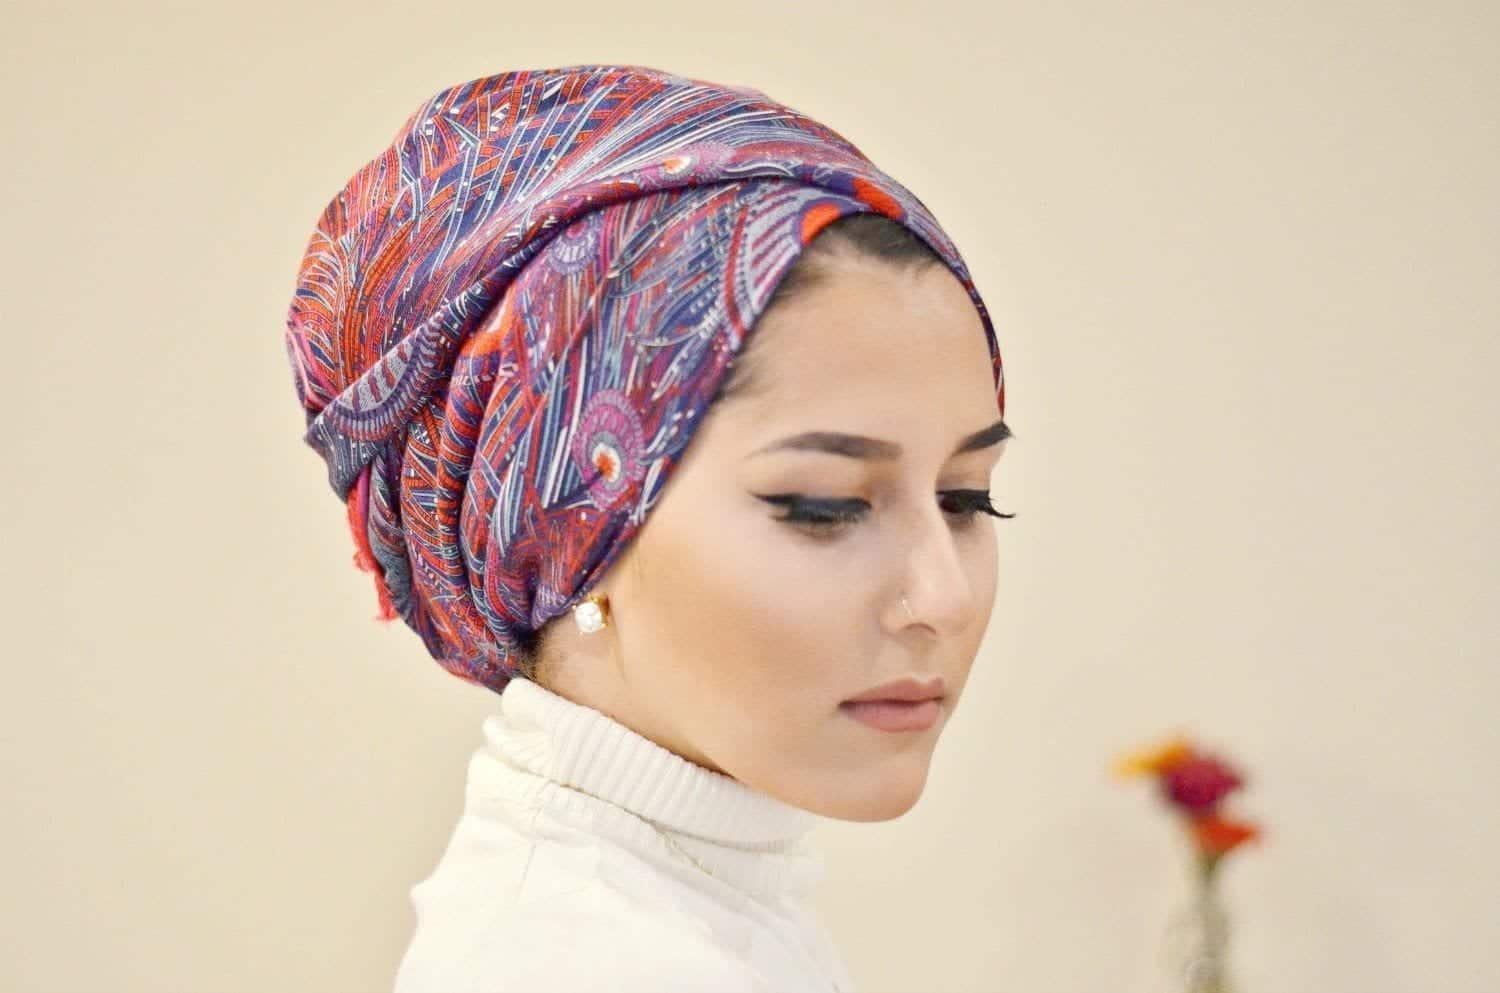 121 20 Best Hijab Styles for Short Height Girls to Look Tall